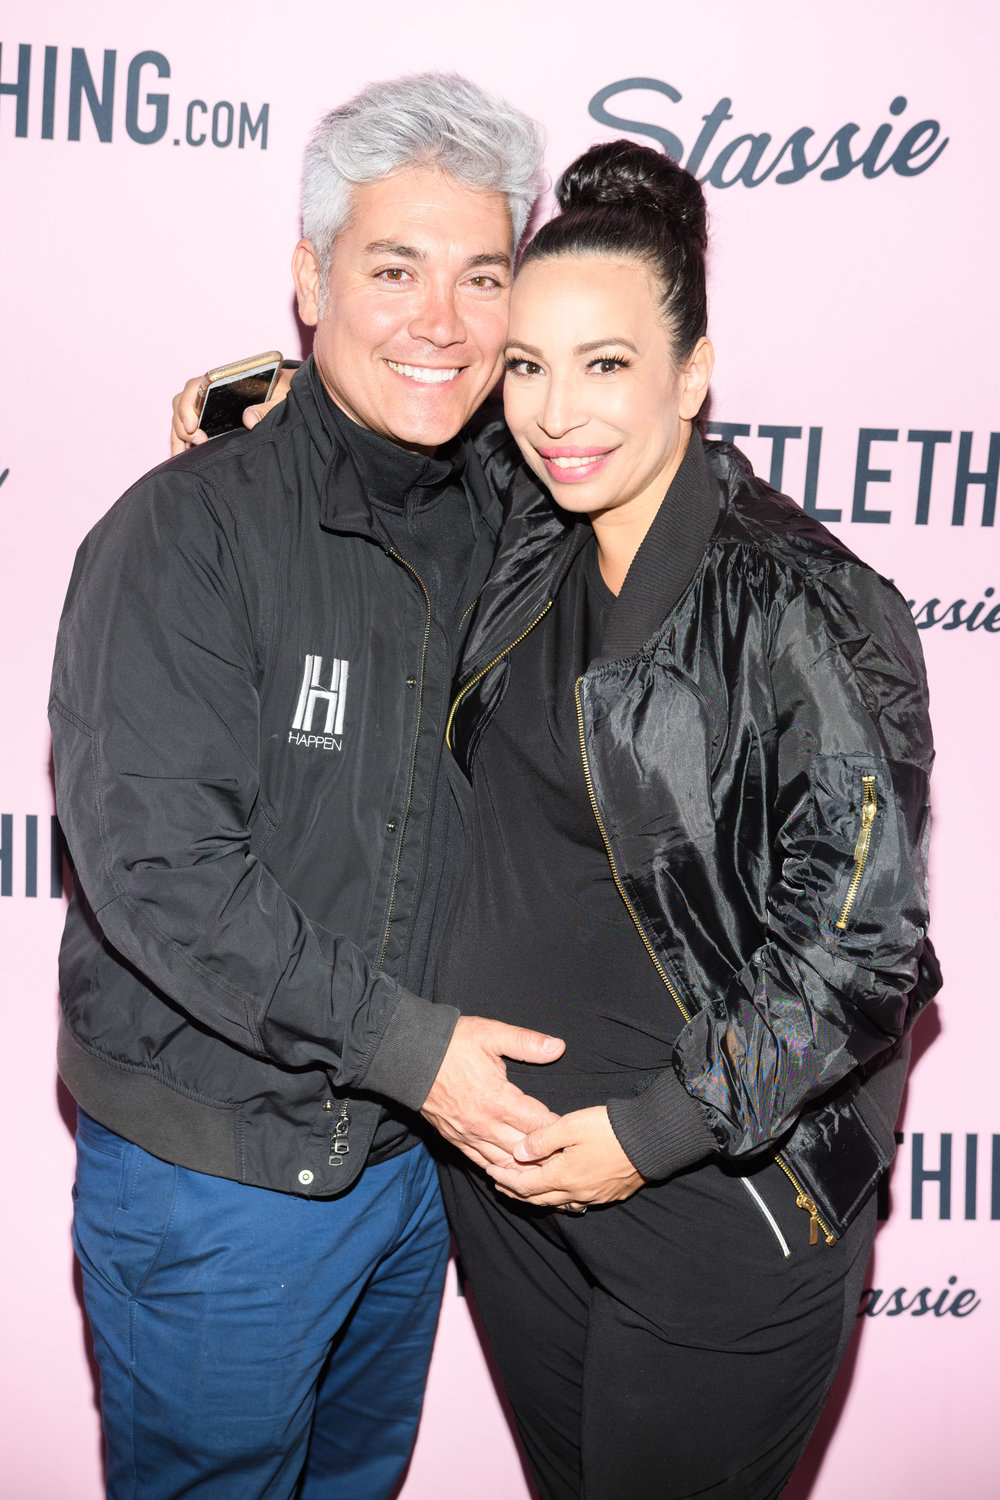 PrettyLittleThing New PLT Shape Collection with Stassie Celebrity Launch Party Herick Serna and Lori of WOTP together.jpg